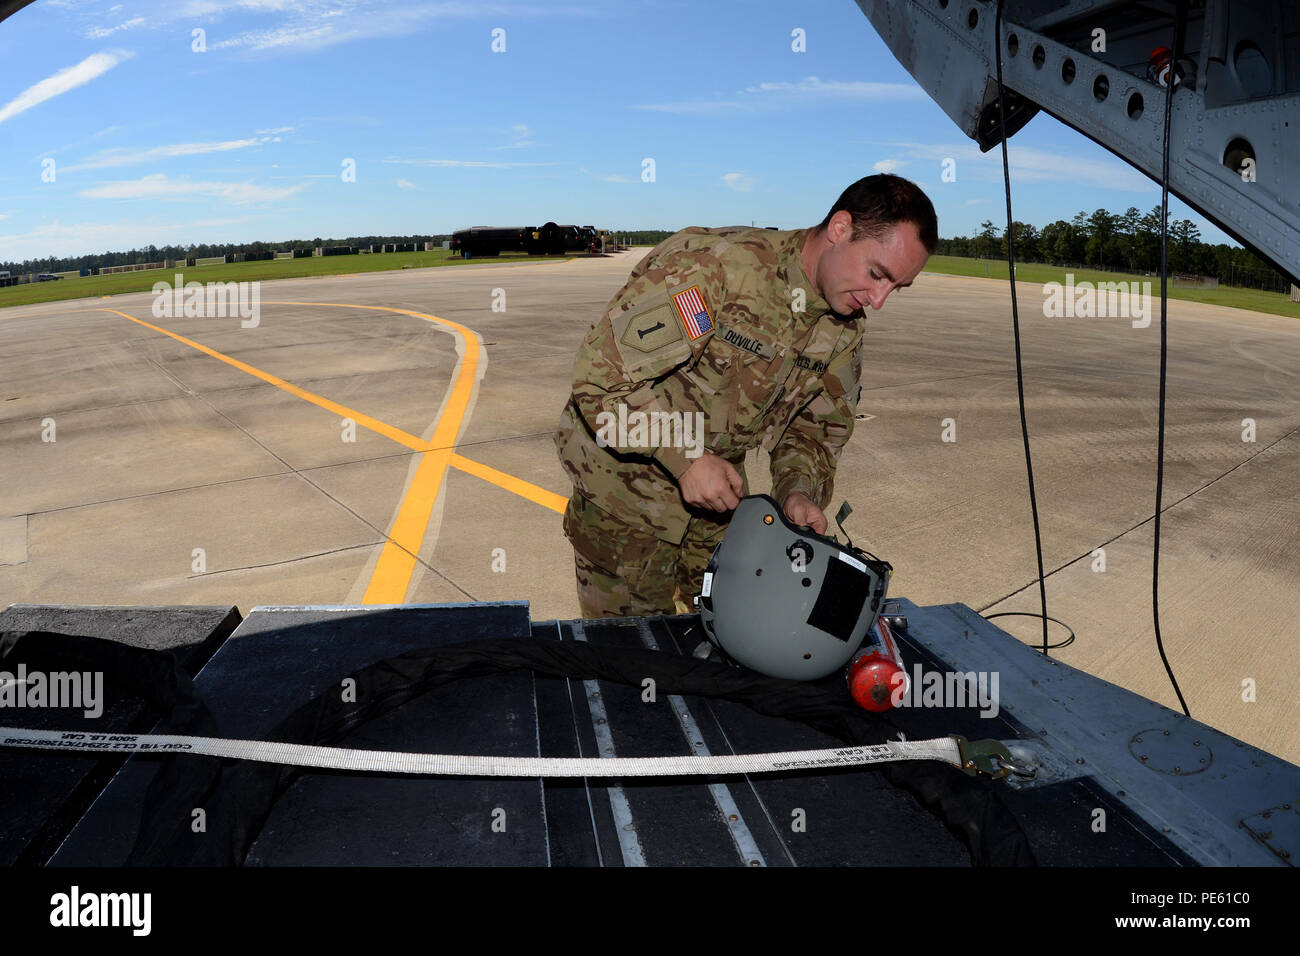 U.S. Army Spc. Ira Duville, a maintainer and crew chief with the South Carolina Army National Guard's 2-238th Aviation Detachment 1, performs pre-flight checks for a sling-loading mission on a Boeing CH-47 Chinook helicopter at McEntire Joint National Guard Base, S.C., during a statewide flood response, Oct. 6, 2015. The South Carolina National Guard has been activated to support state and county emergency management agencies and local first responders as historic flooding impacts counties statewide. Currently, more than 2,200 South Carolina National Guard members have been activated in respon Stock Photo